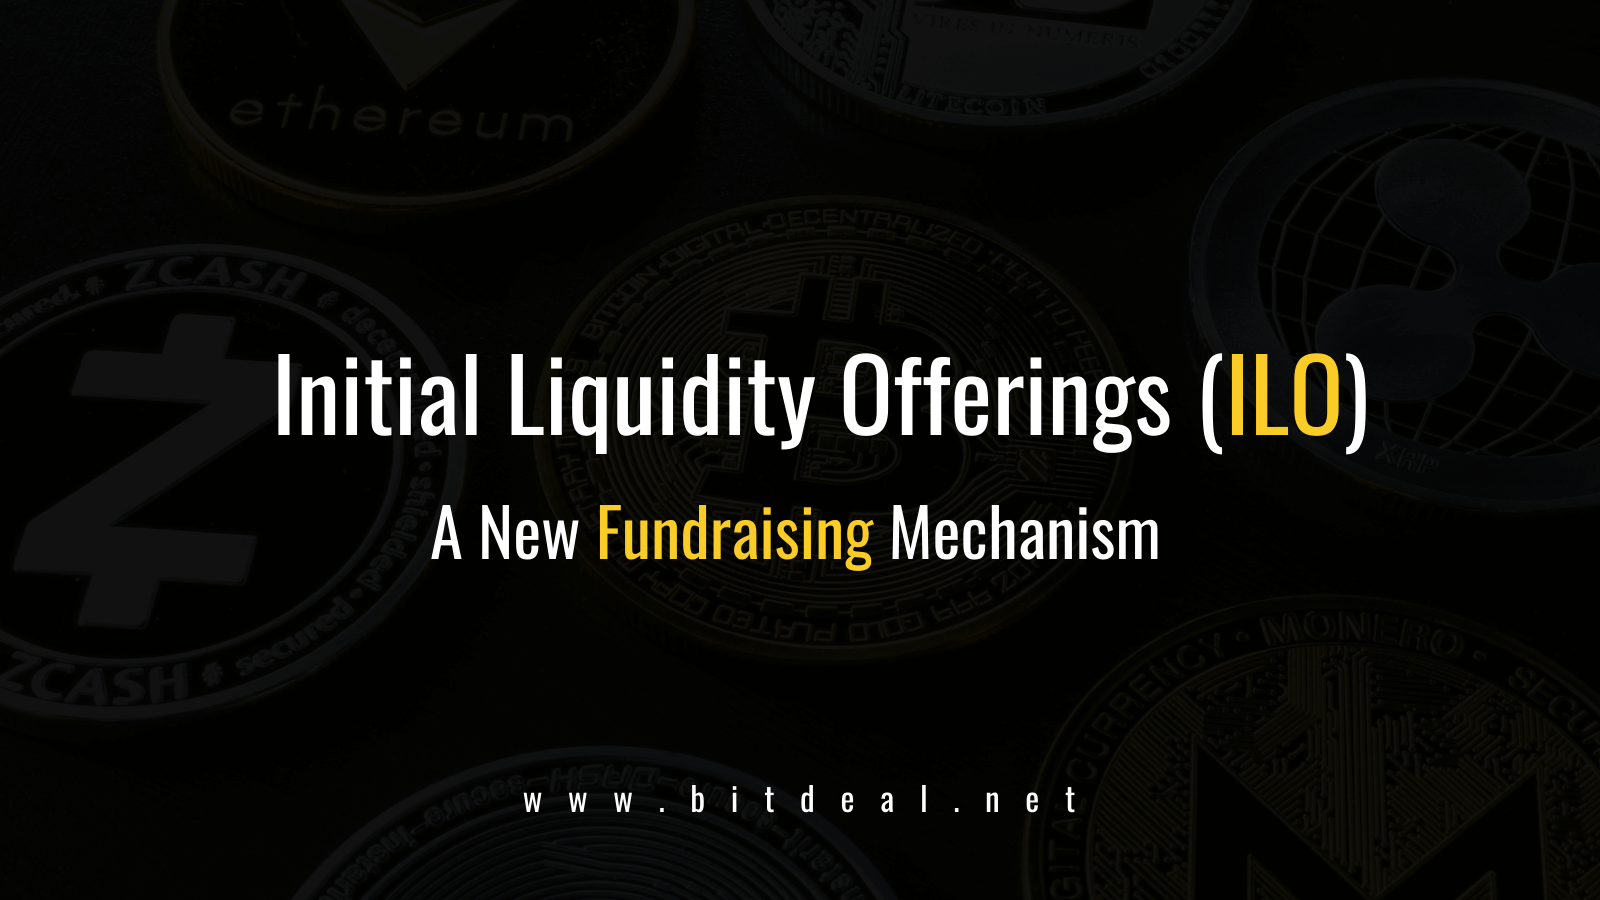 Initial Liquidity Offering - A New Fundraising Mechanism